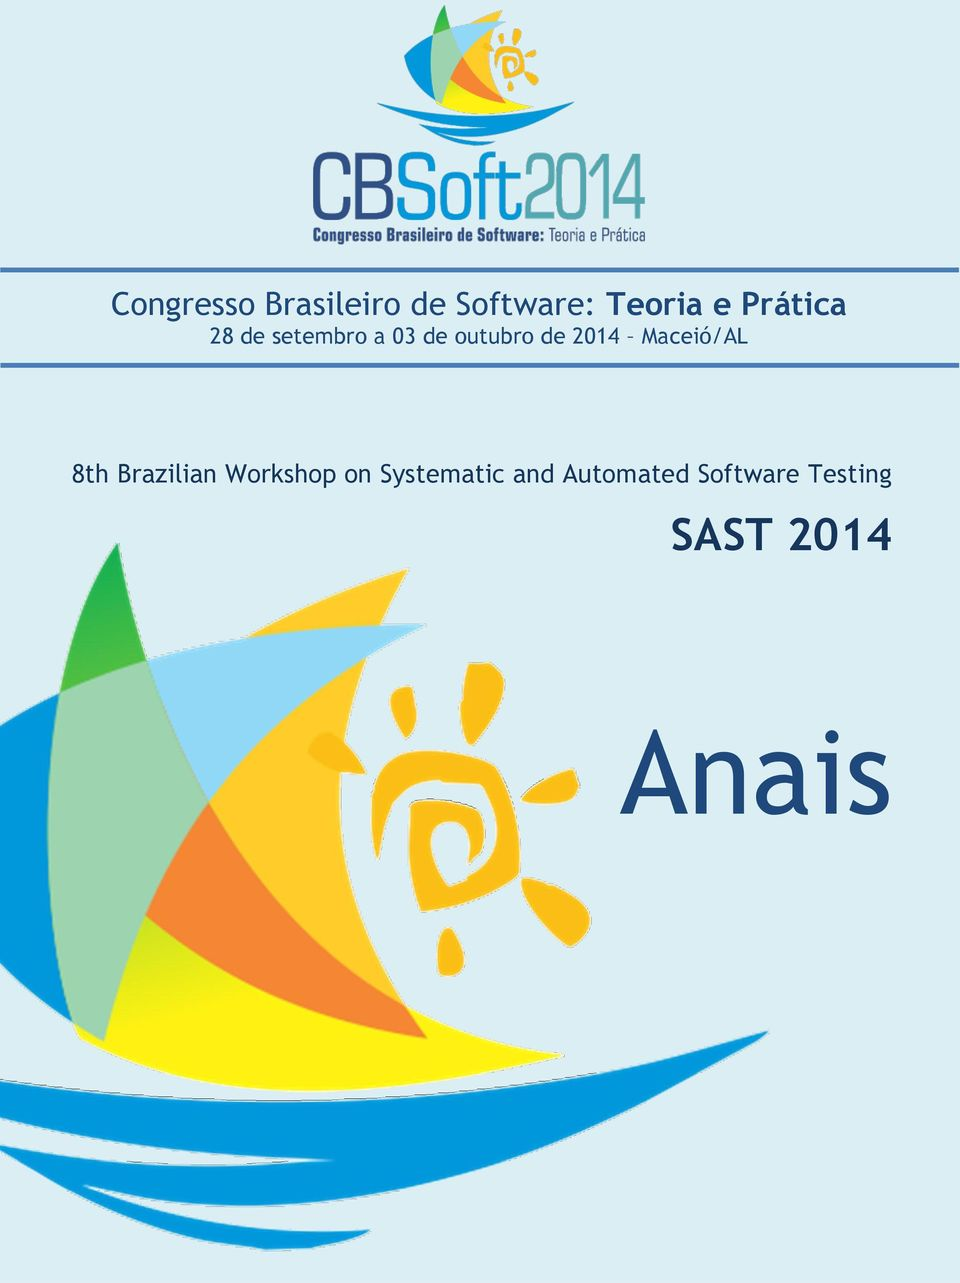 2014 Maceió/AL 8th Brazilian Workshop on